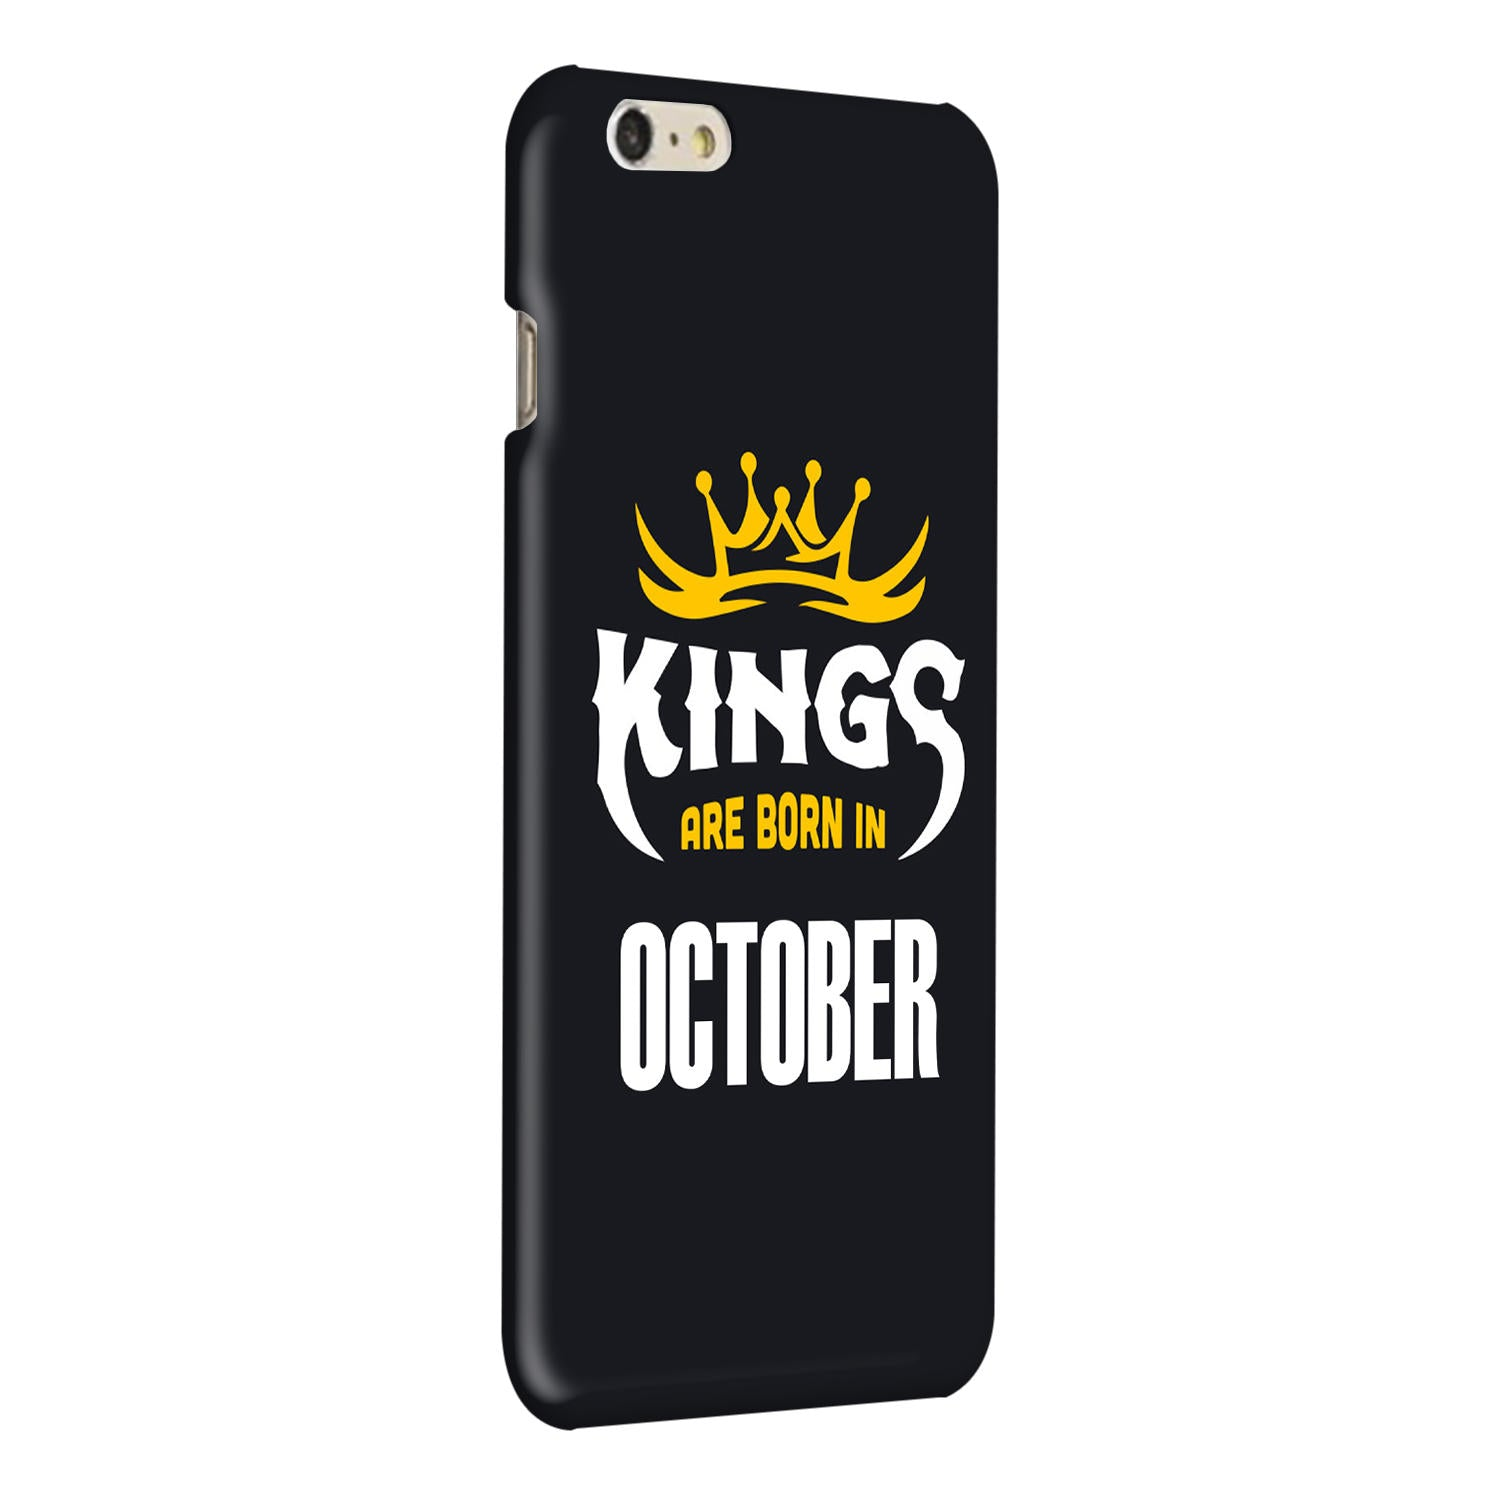 Kings October - Narcissist iPhone 6 Plus Mobile Cover Case